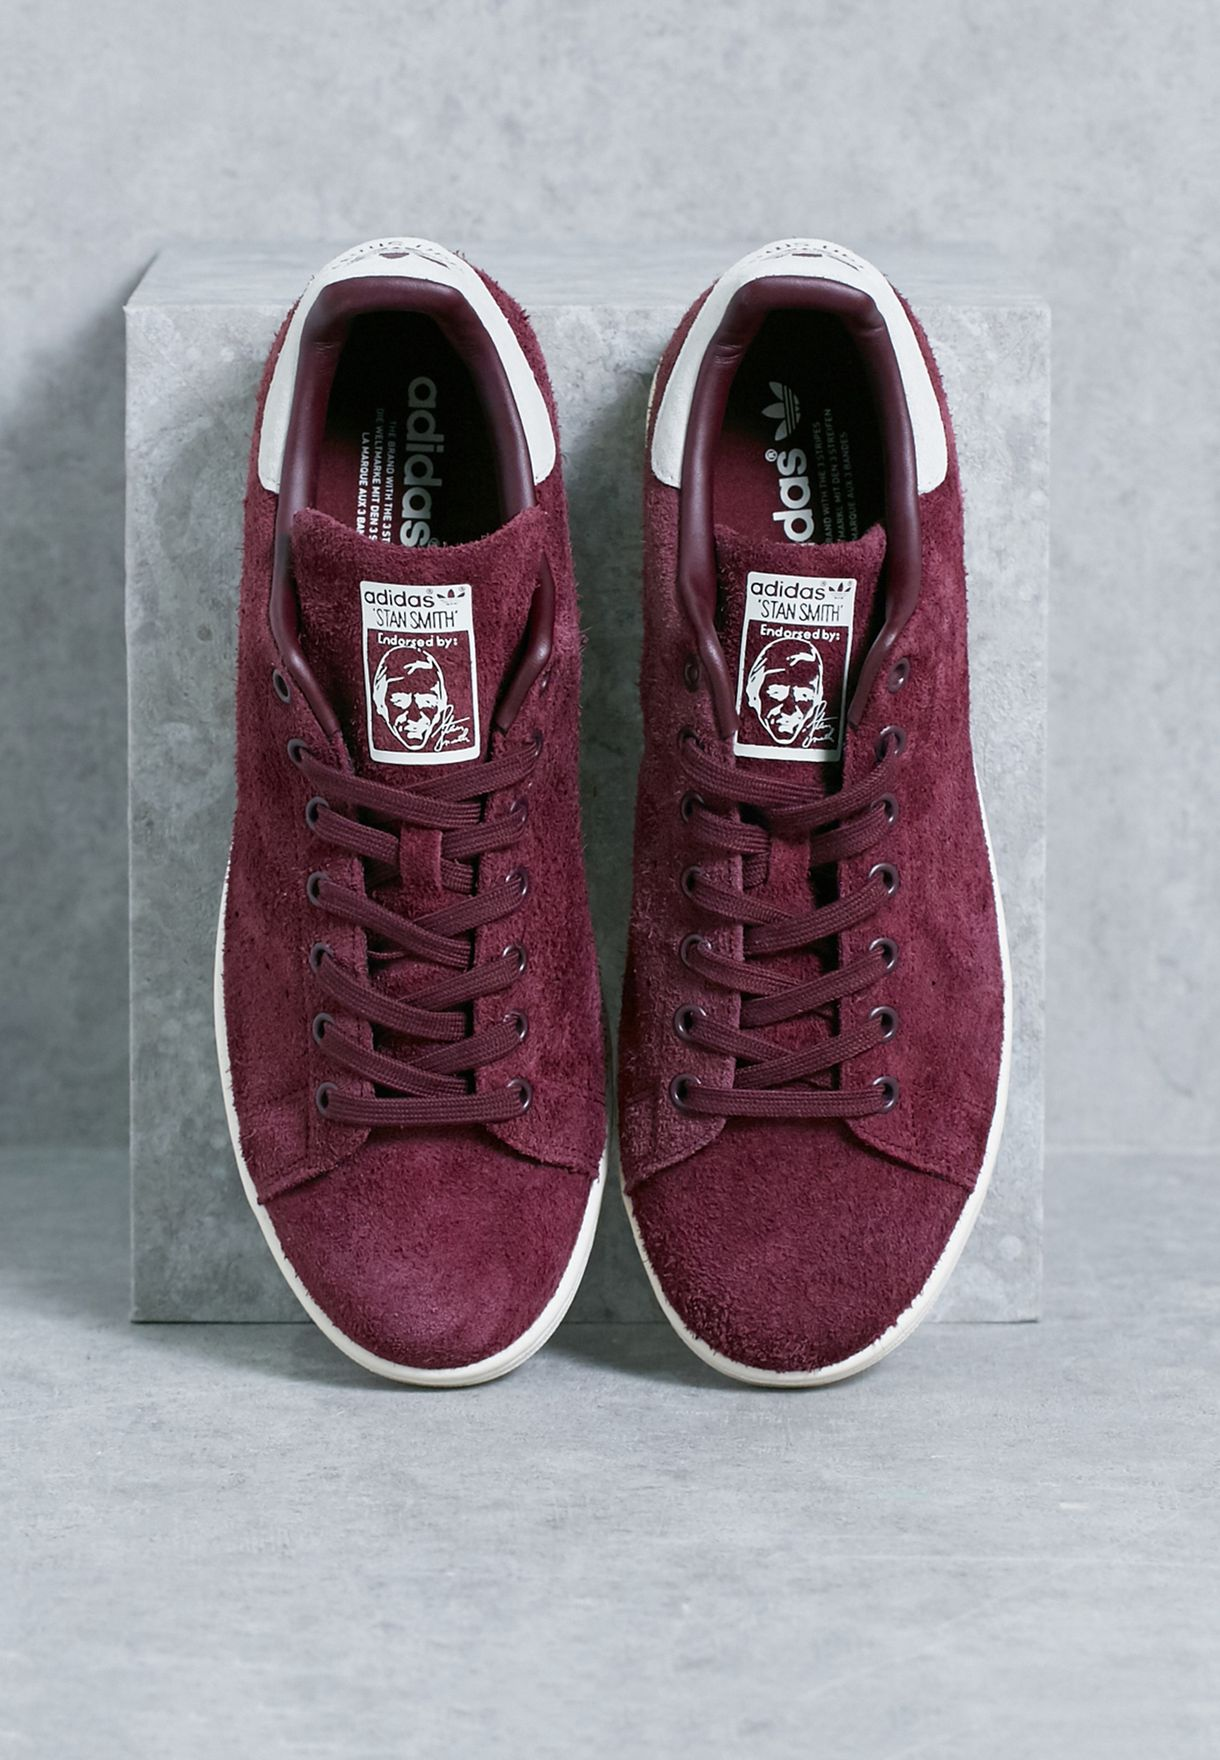 bfb01b2f718 Shop adidas Originals burgundy Stan Smith S82247 for Men in Saudi ...